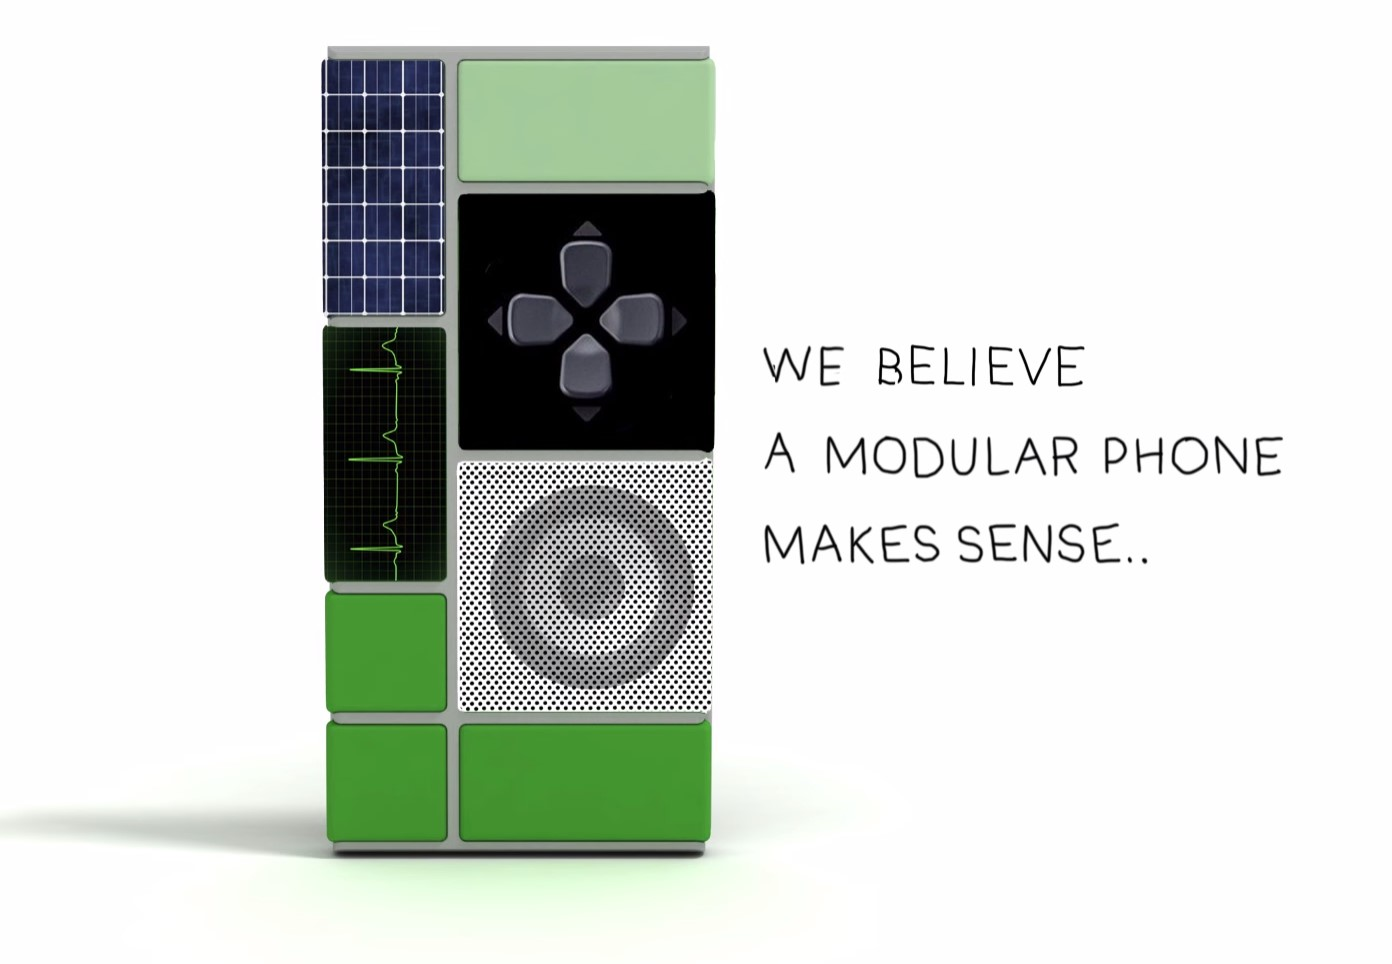 modular phones - phonebloks - what is a modular phone - Modular Cell Phones - Google Modular Phones